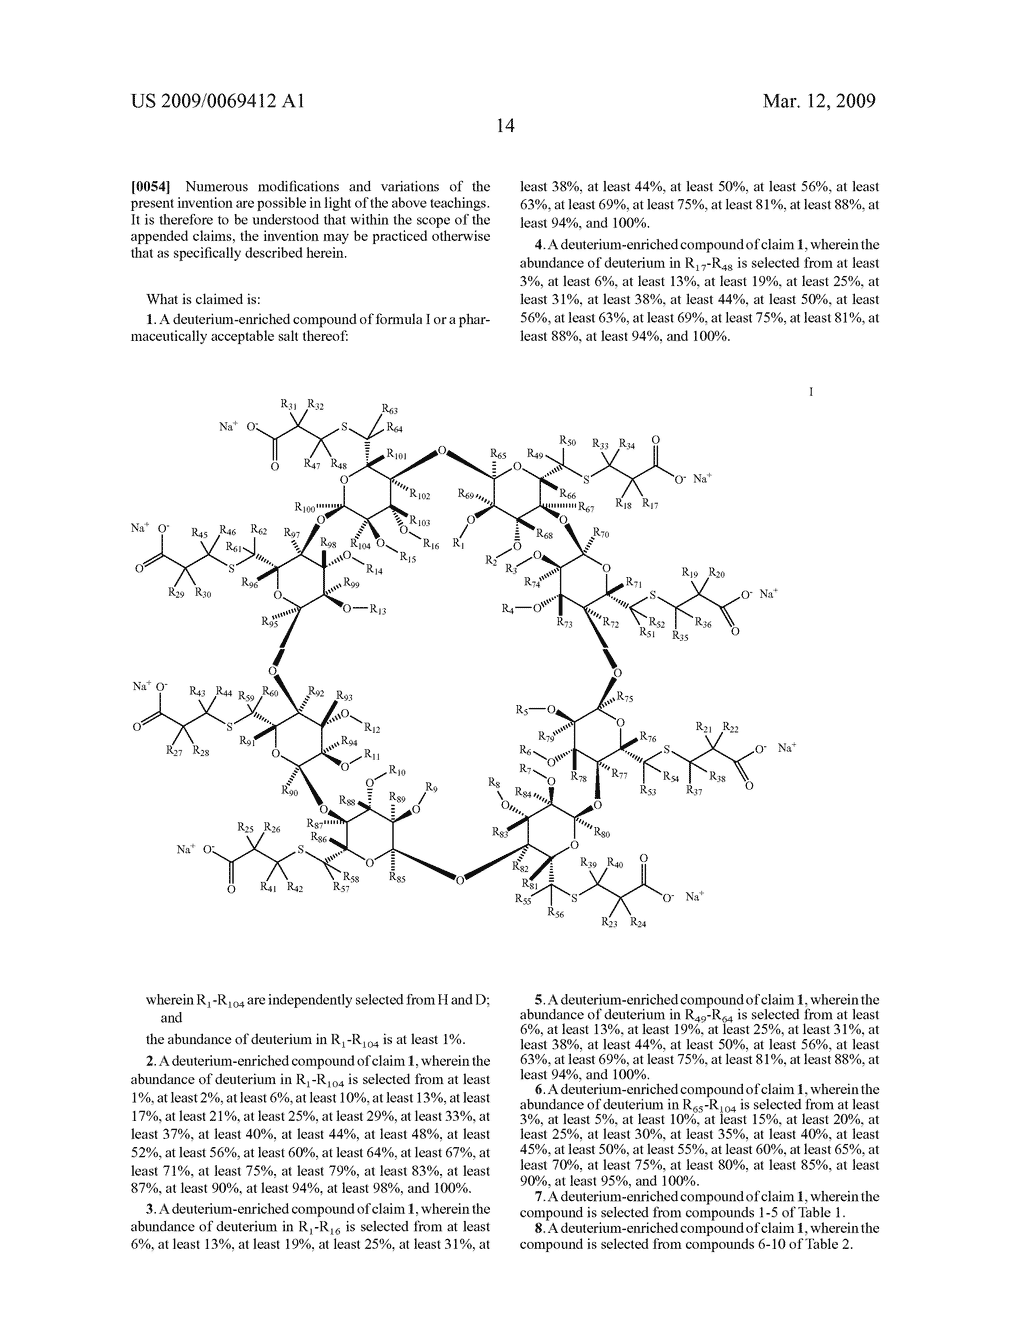 DEUTERIUM-ENRICHED SUGAMMADEX - diagram, schematic, and image 15